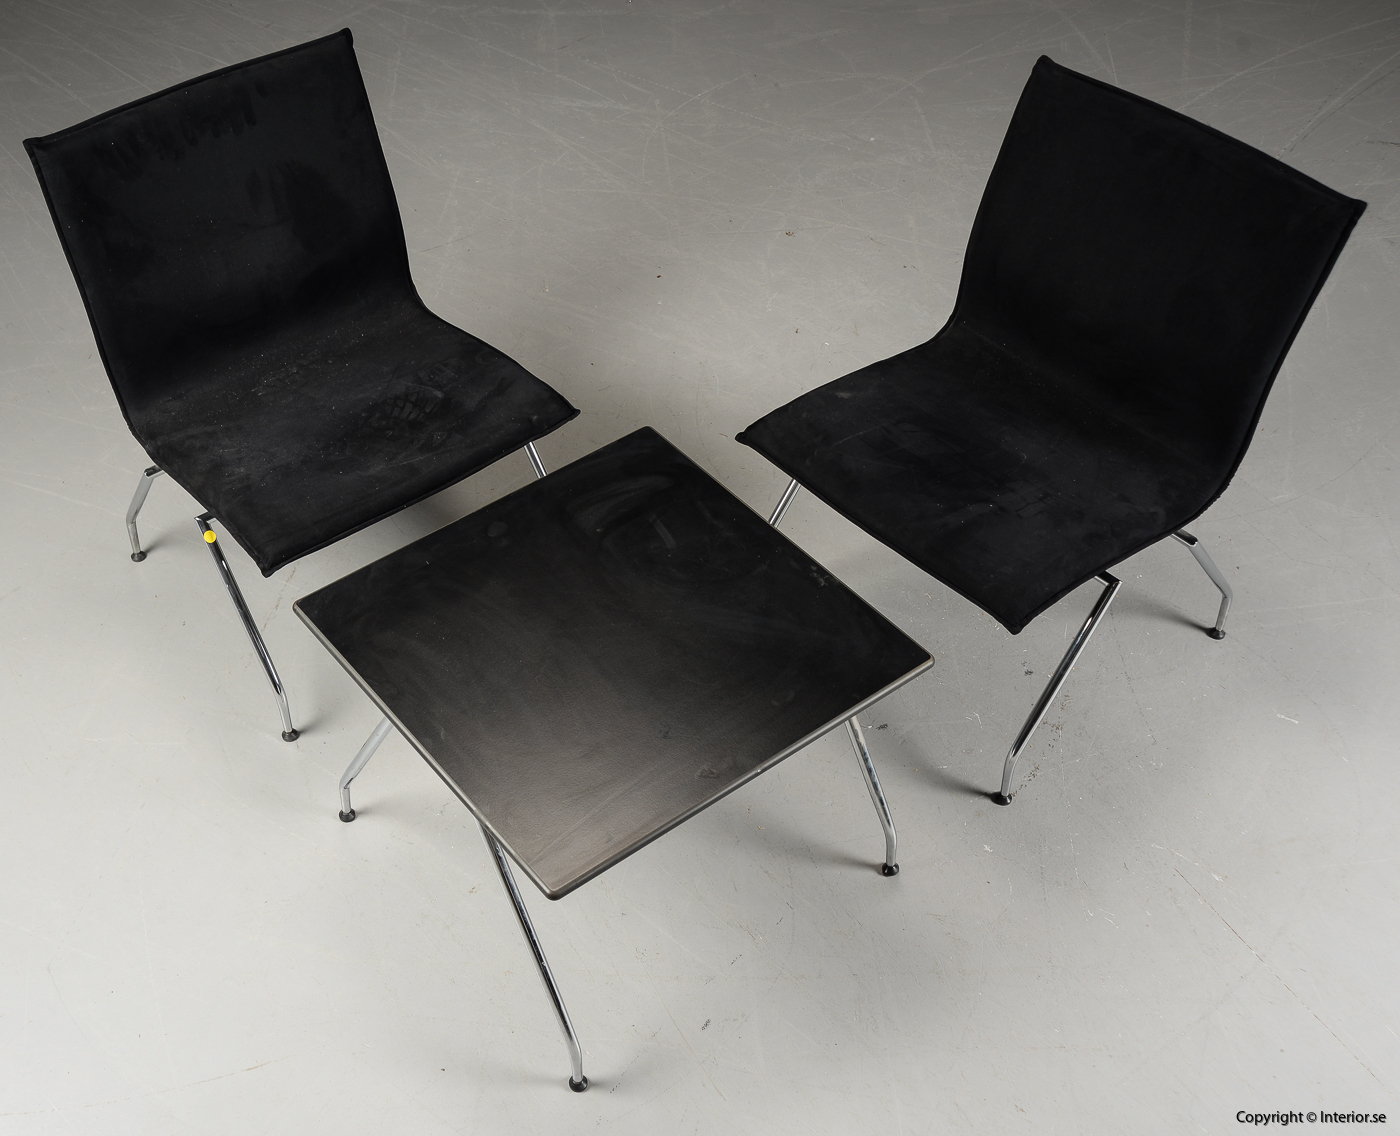 Loungegrupp, Magnus Olesen, Tonica Easy - Design Bent Krog 2